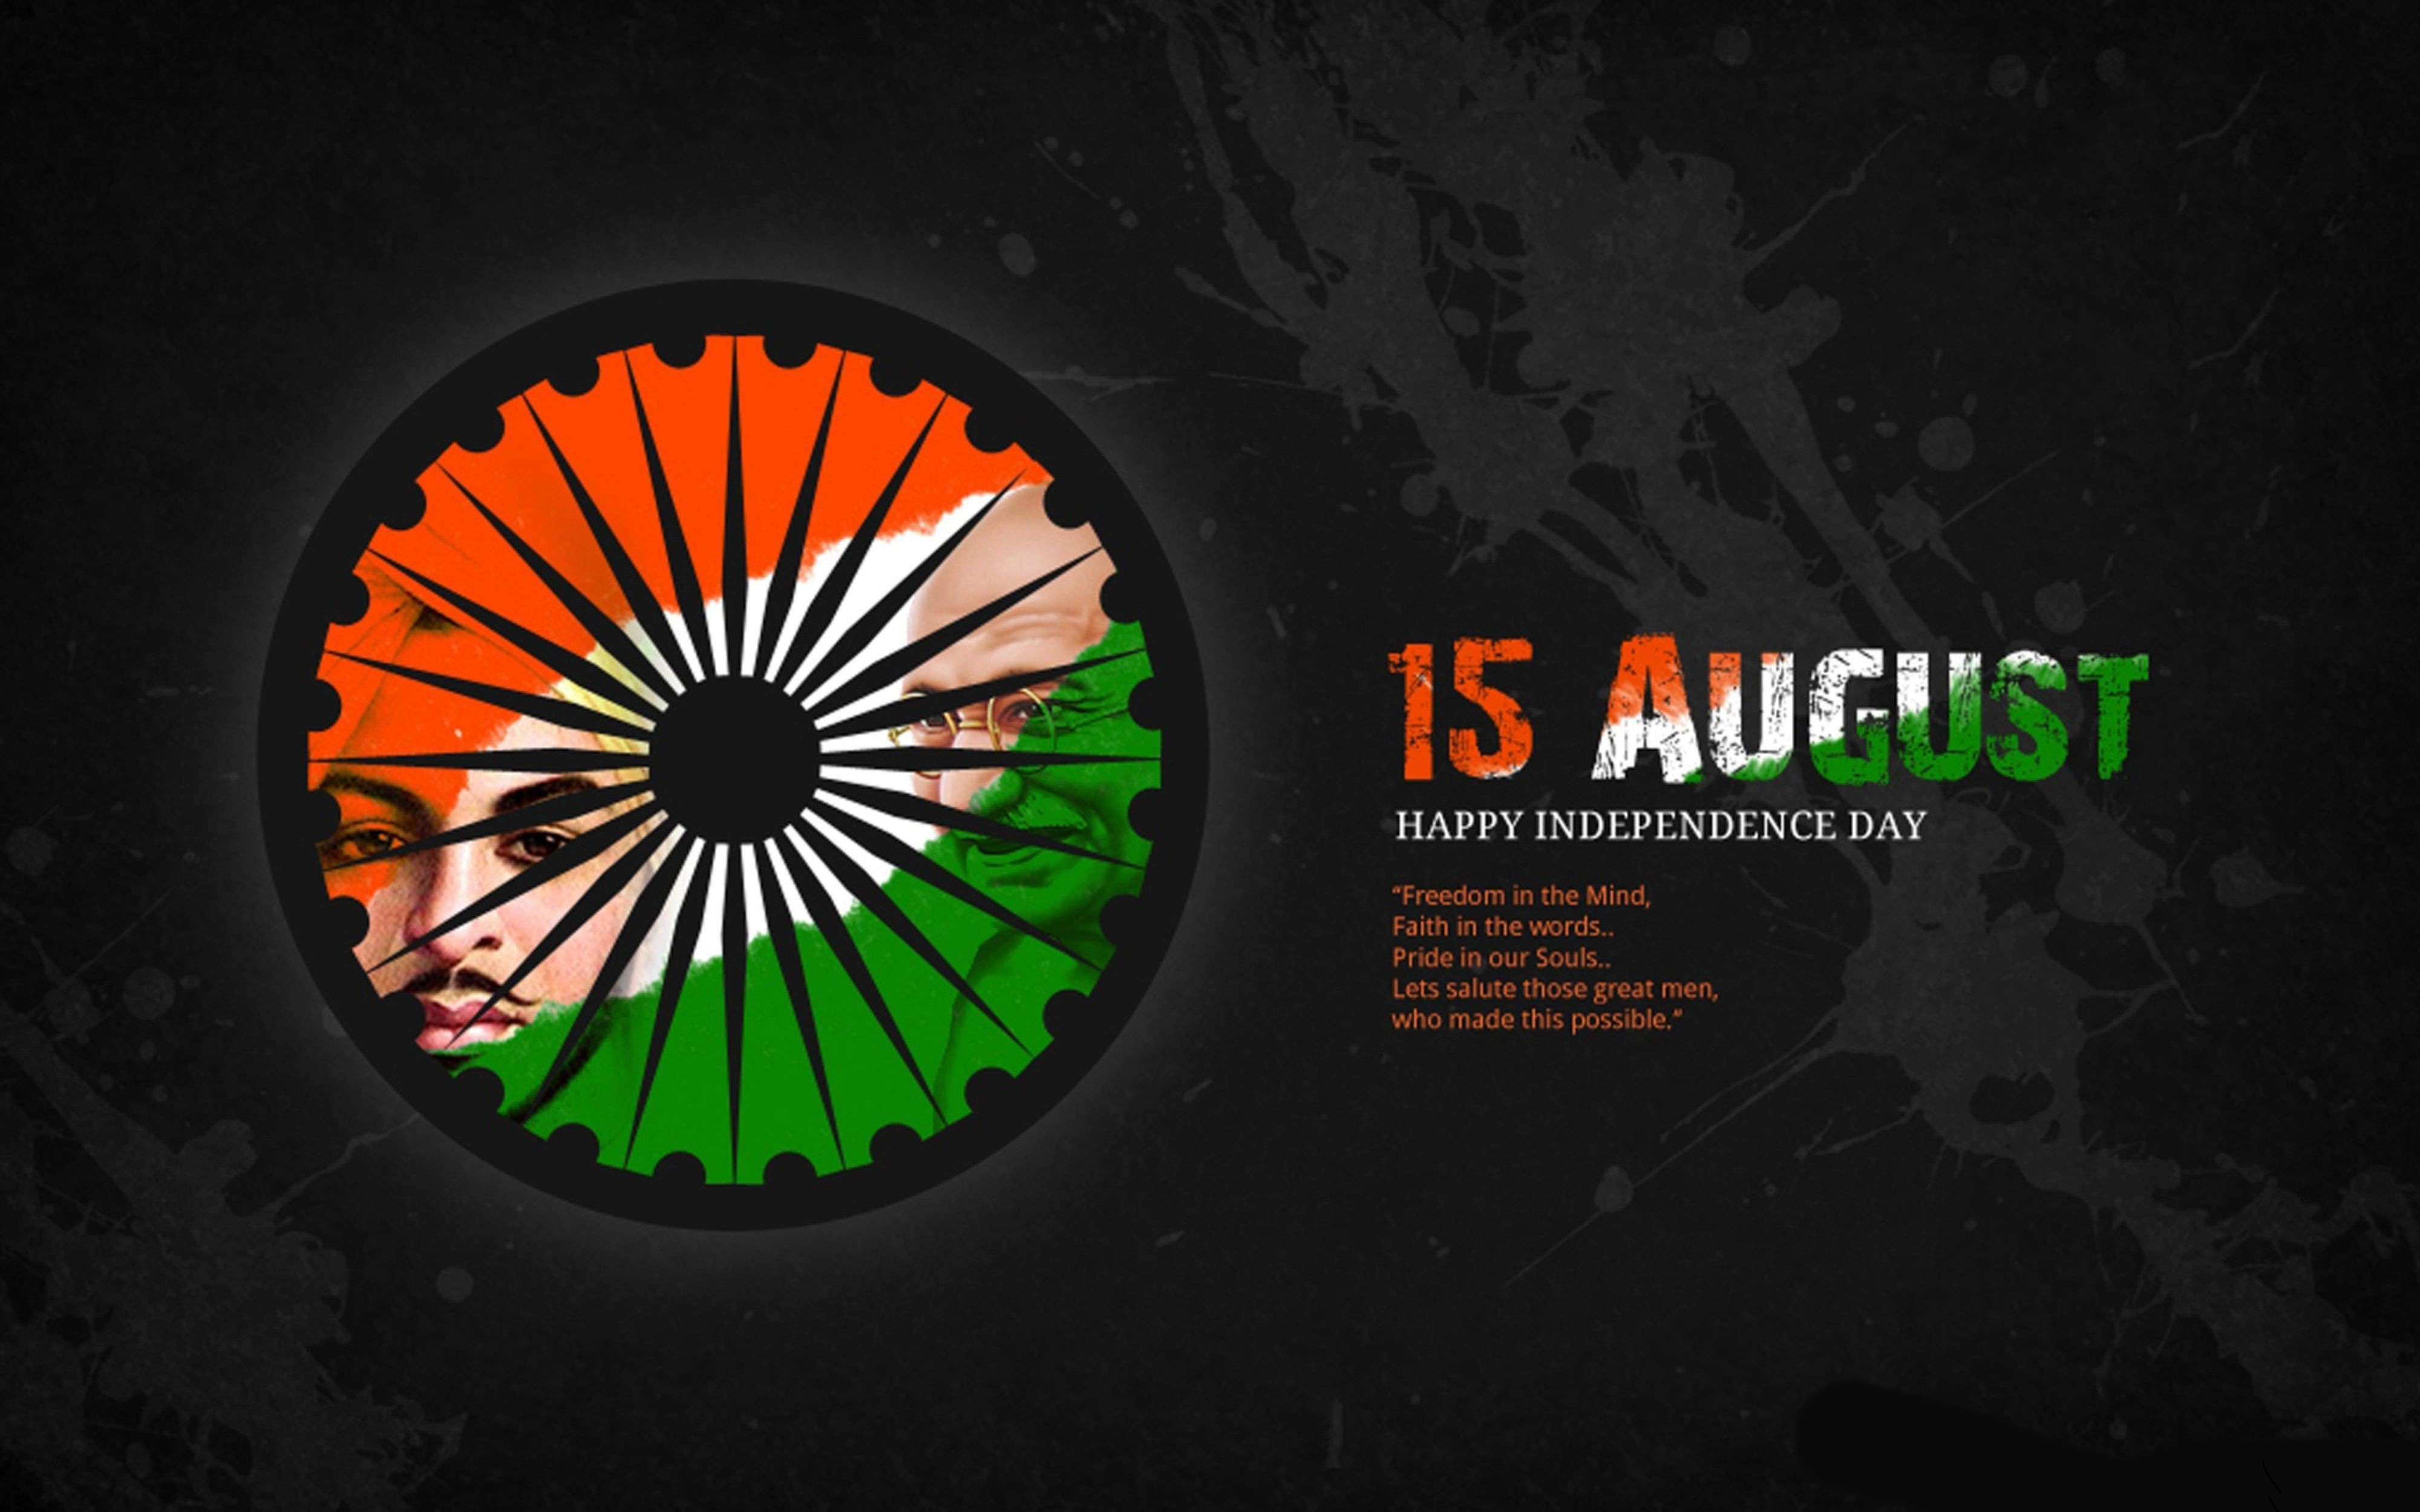 71st Independence Day Images